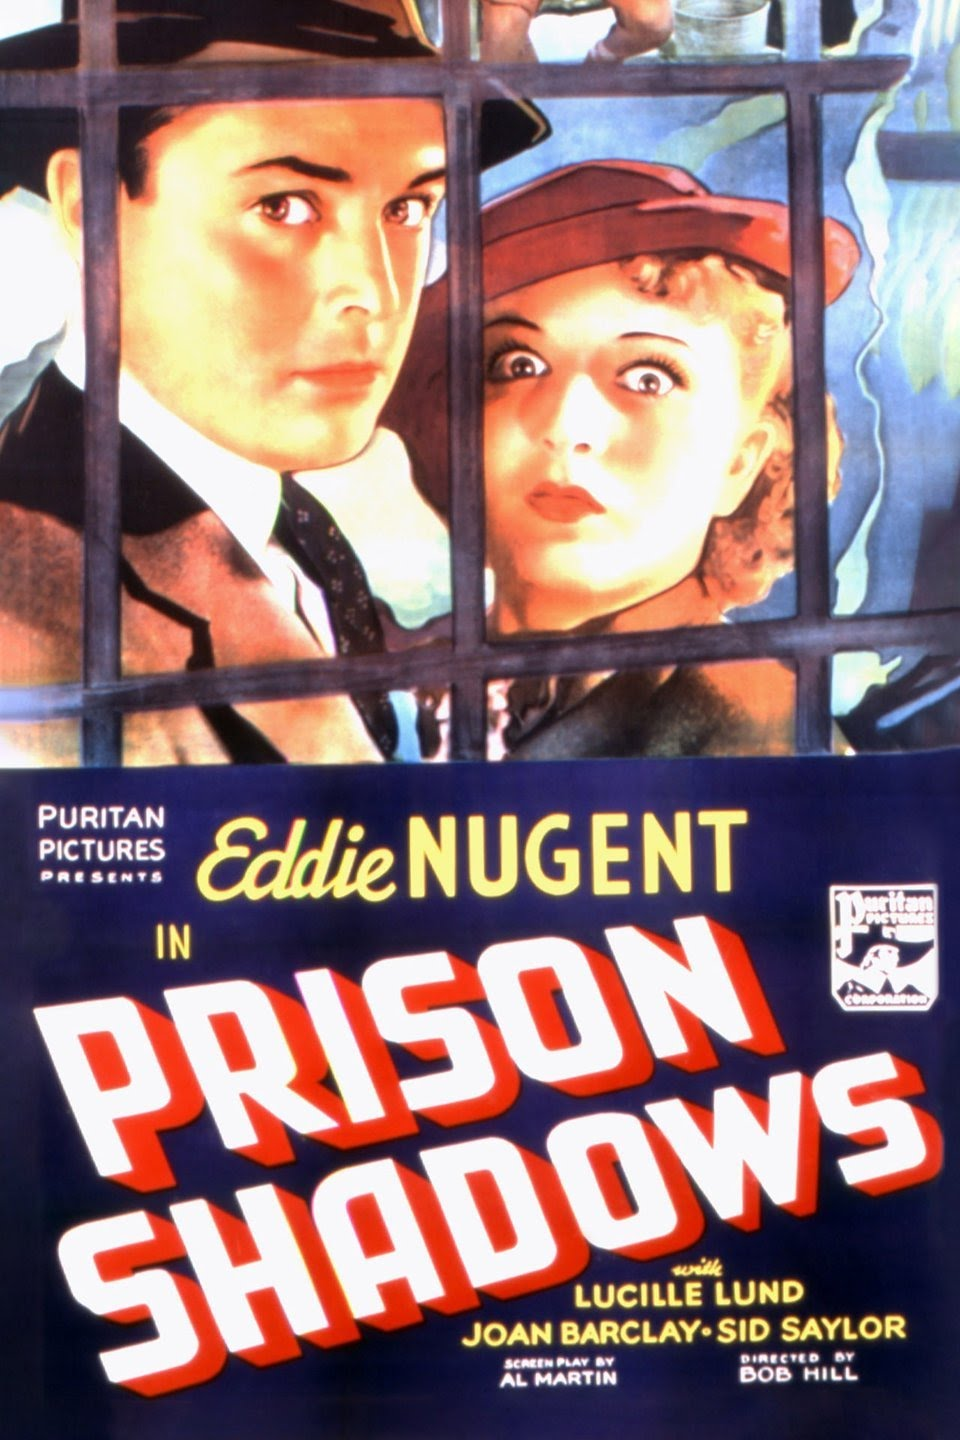 Lucille Lund and Edward J. Nugent in Prison Shadows (1936)